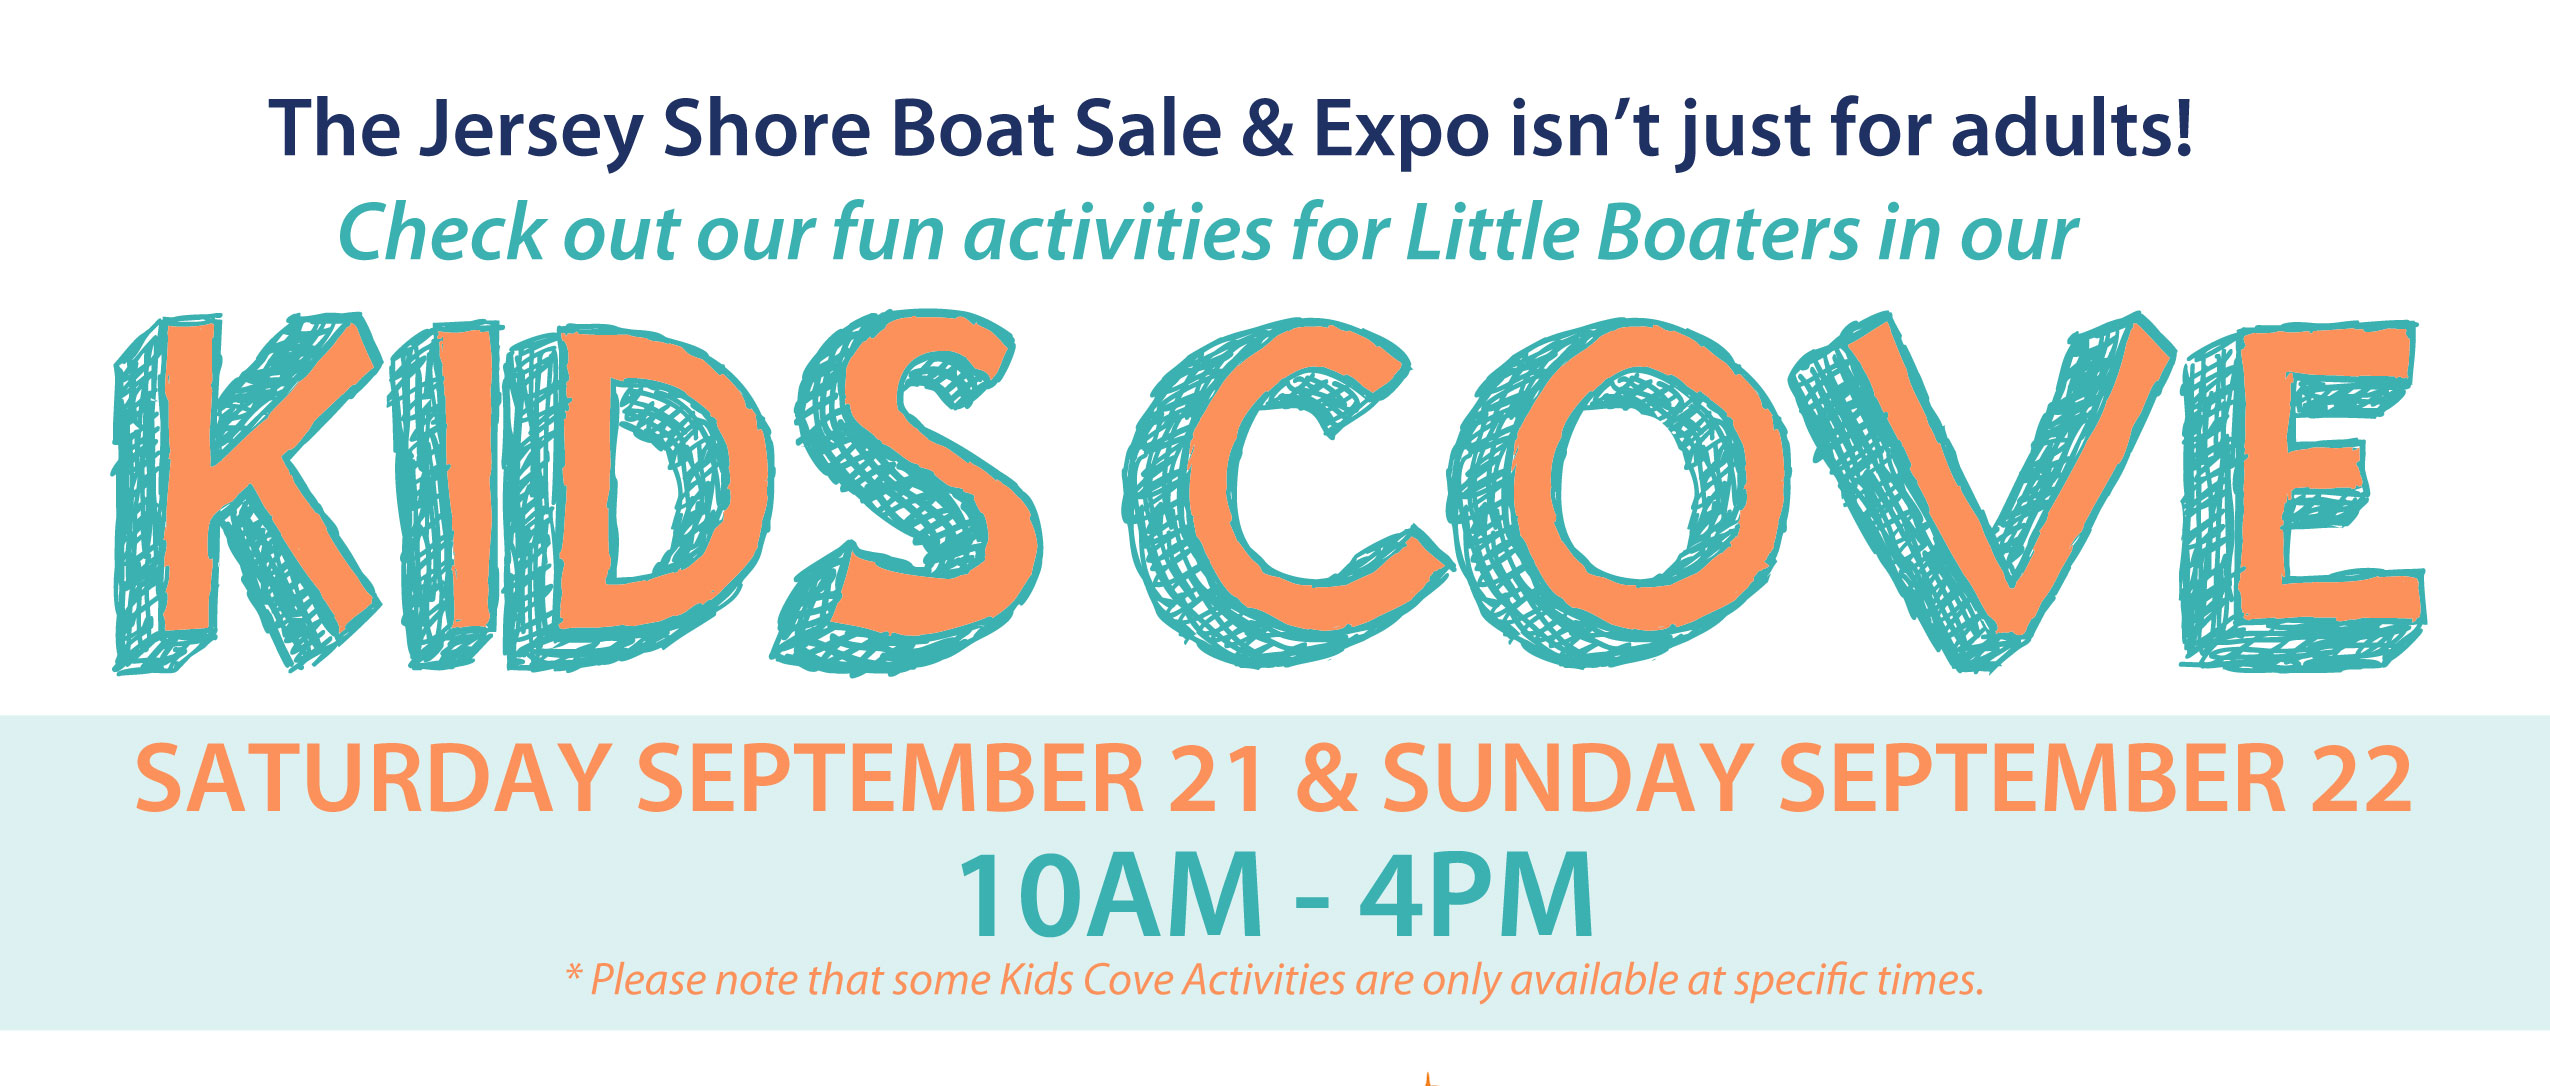 Kids Cove Saturday Sept 21 and Sunday Sept 22